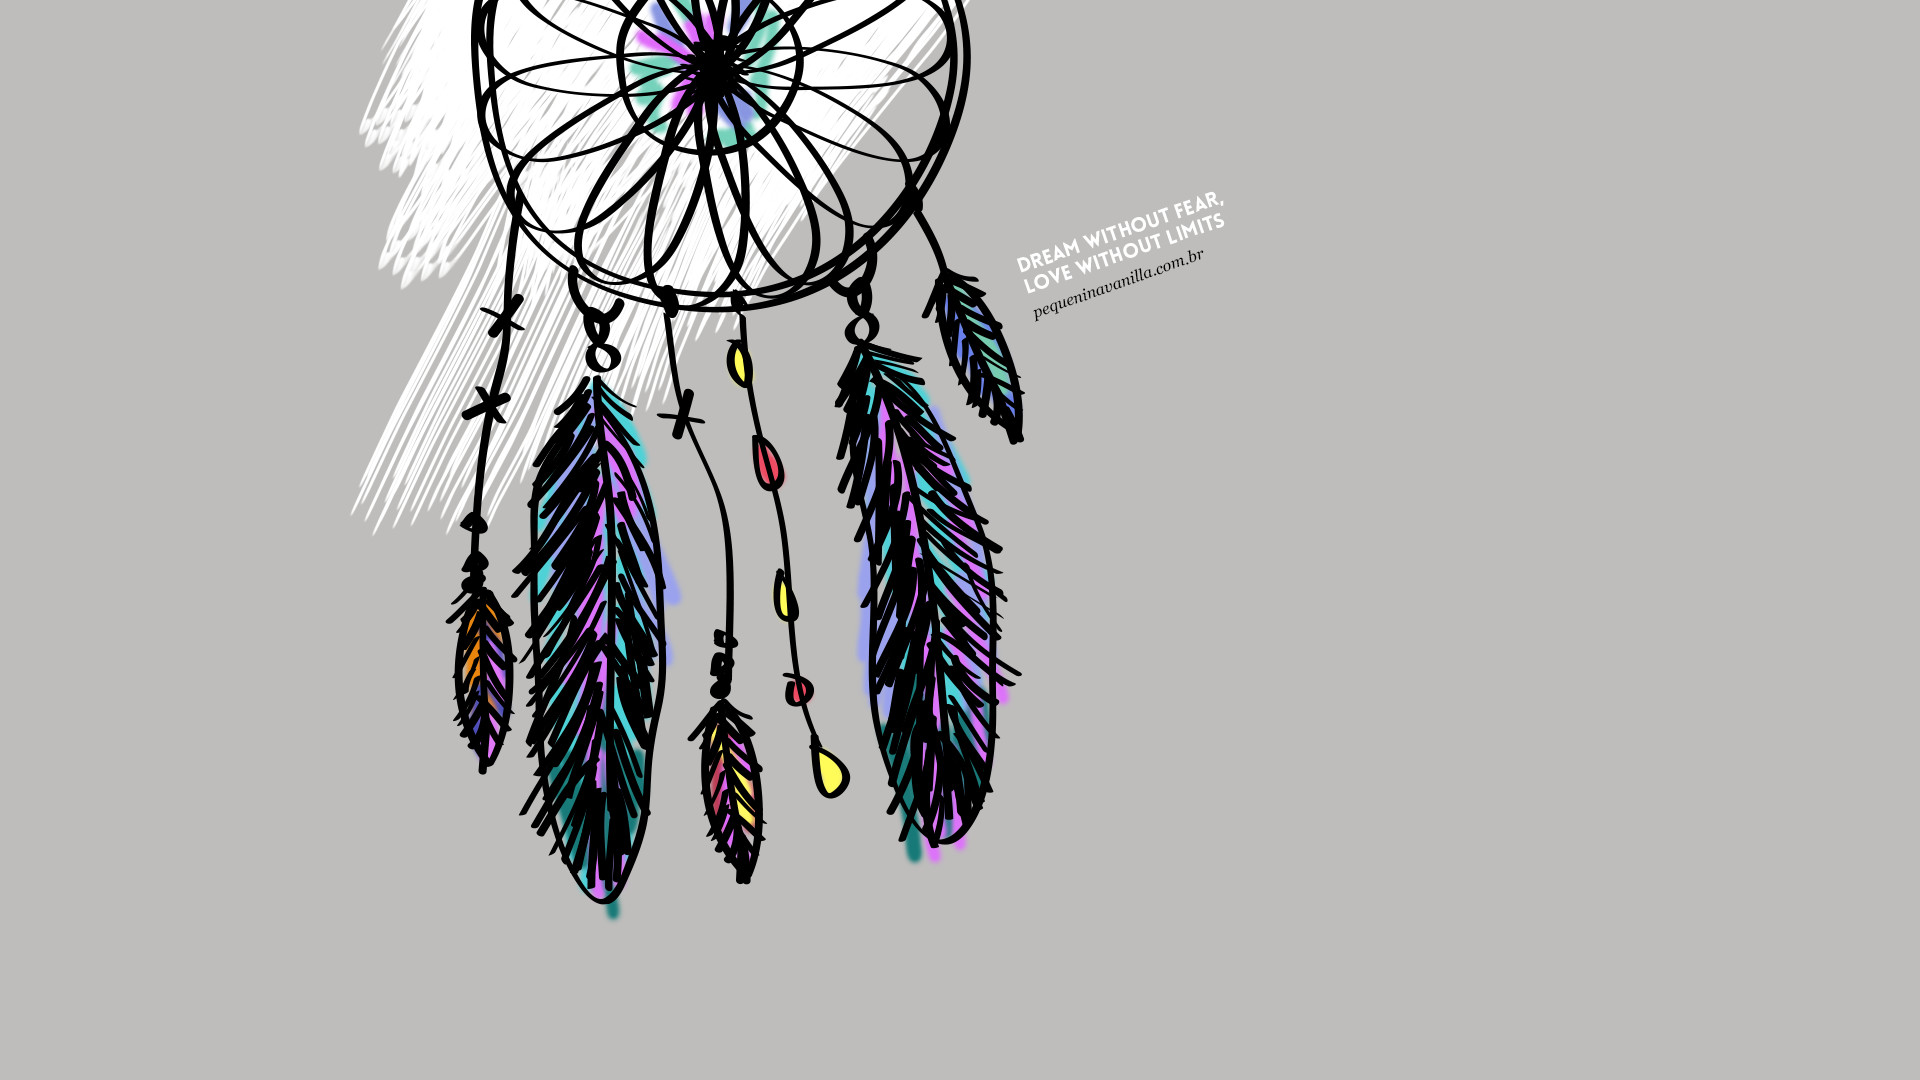 Dreamcatcher wallpaper tumblr 57 images 1920x1080 grey illustrated dreamcatcher dream love desktop wallpaper background wallpaper pinterest voltagebd Choice Image